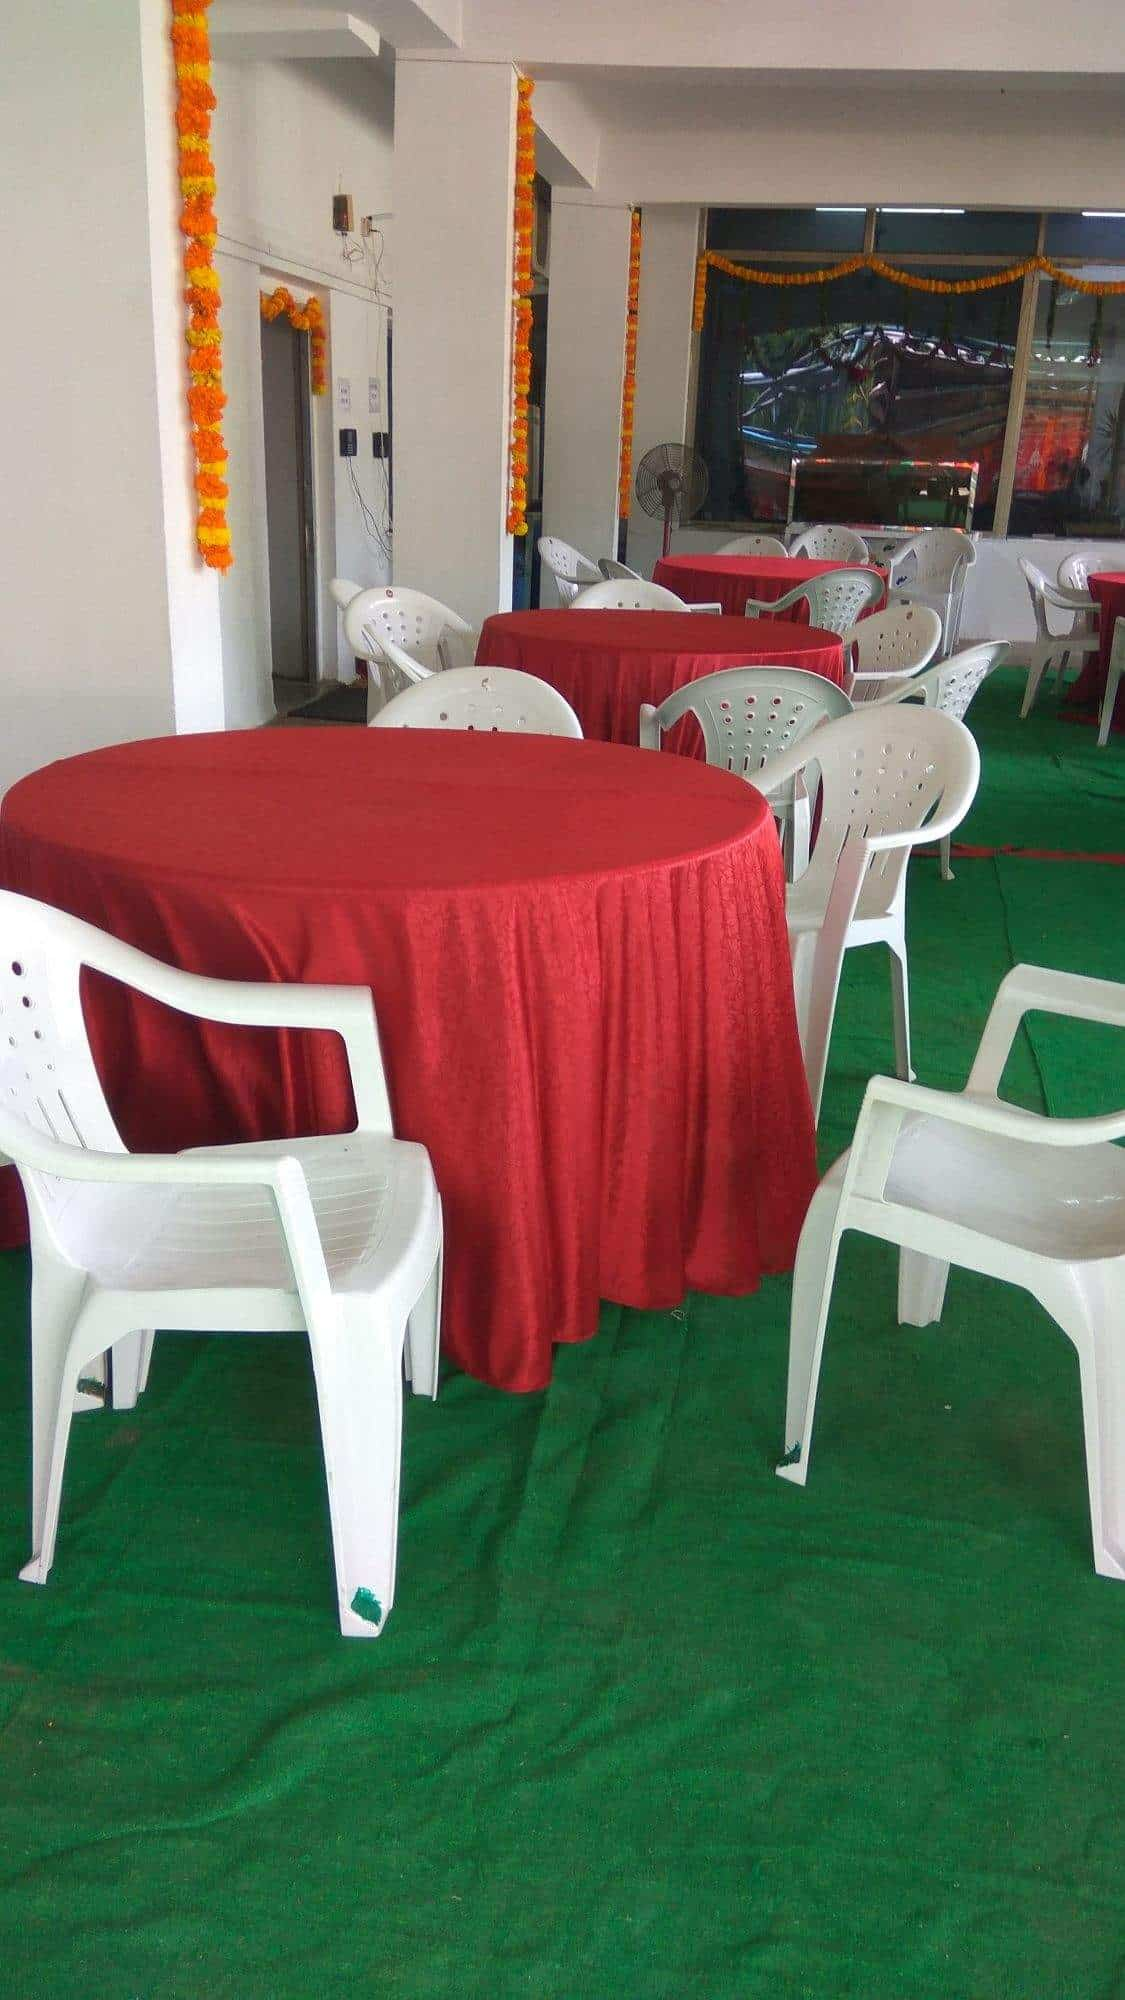 Dining Table Decoration - Sri Ganesh Tent House Photos Old Bowenpally Bowenpally Hyderabad - & Sri Ganesh Tent House Photos Old Bowenpally Bowenpally Hyderabad ...